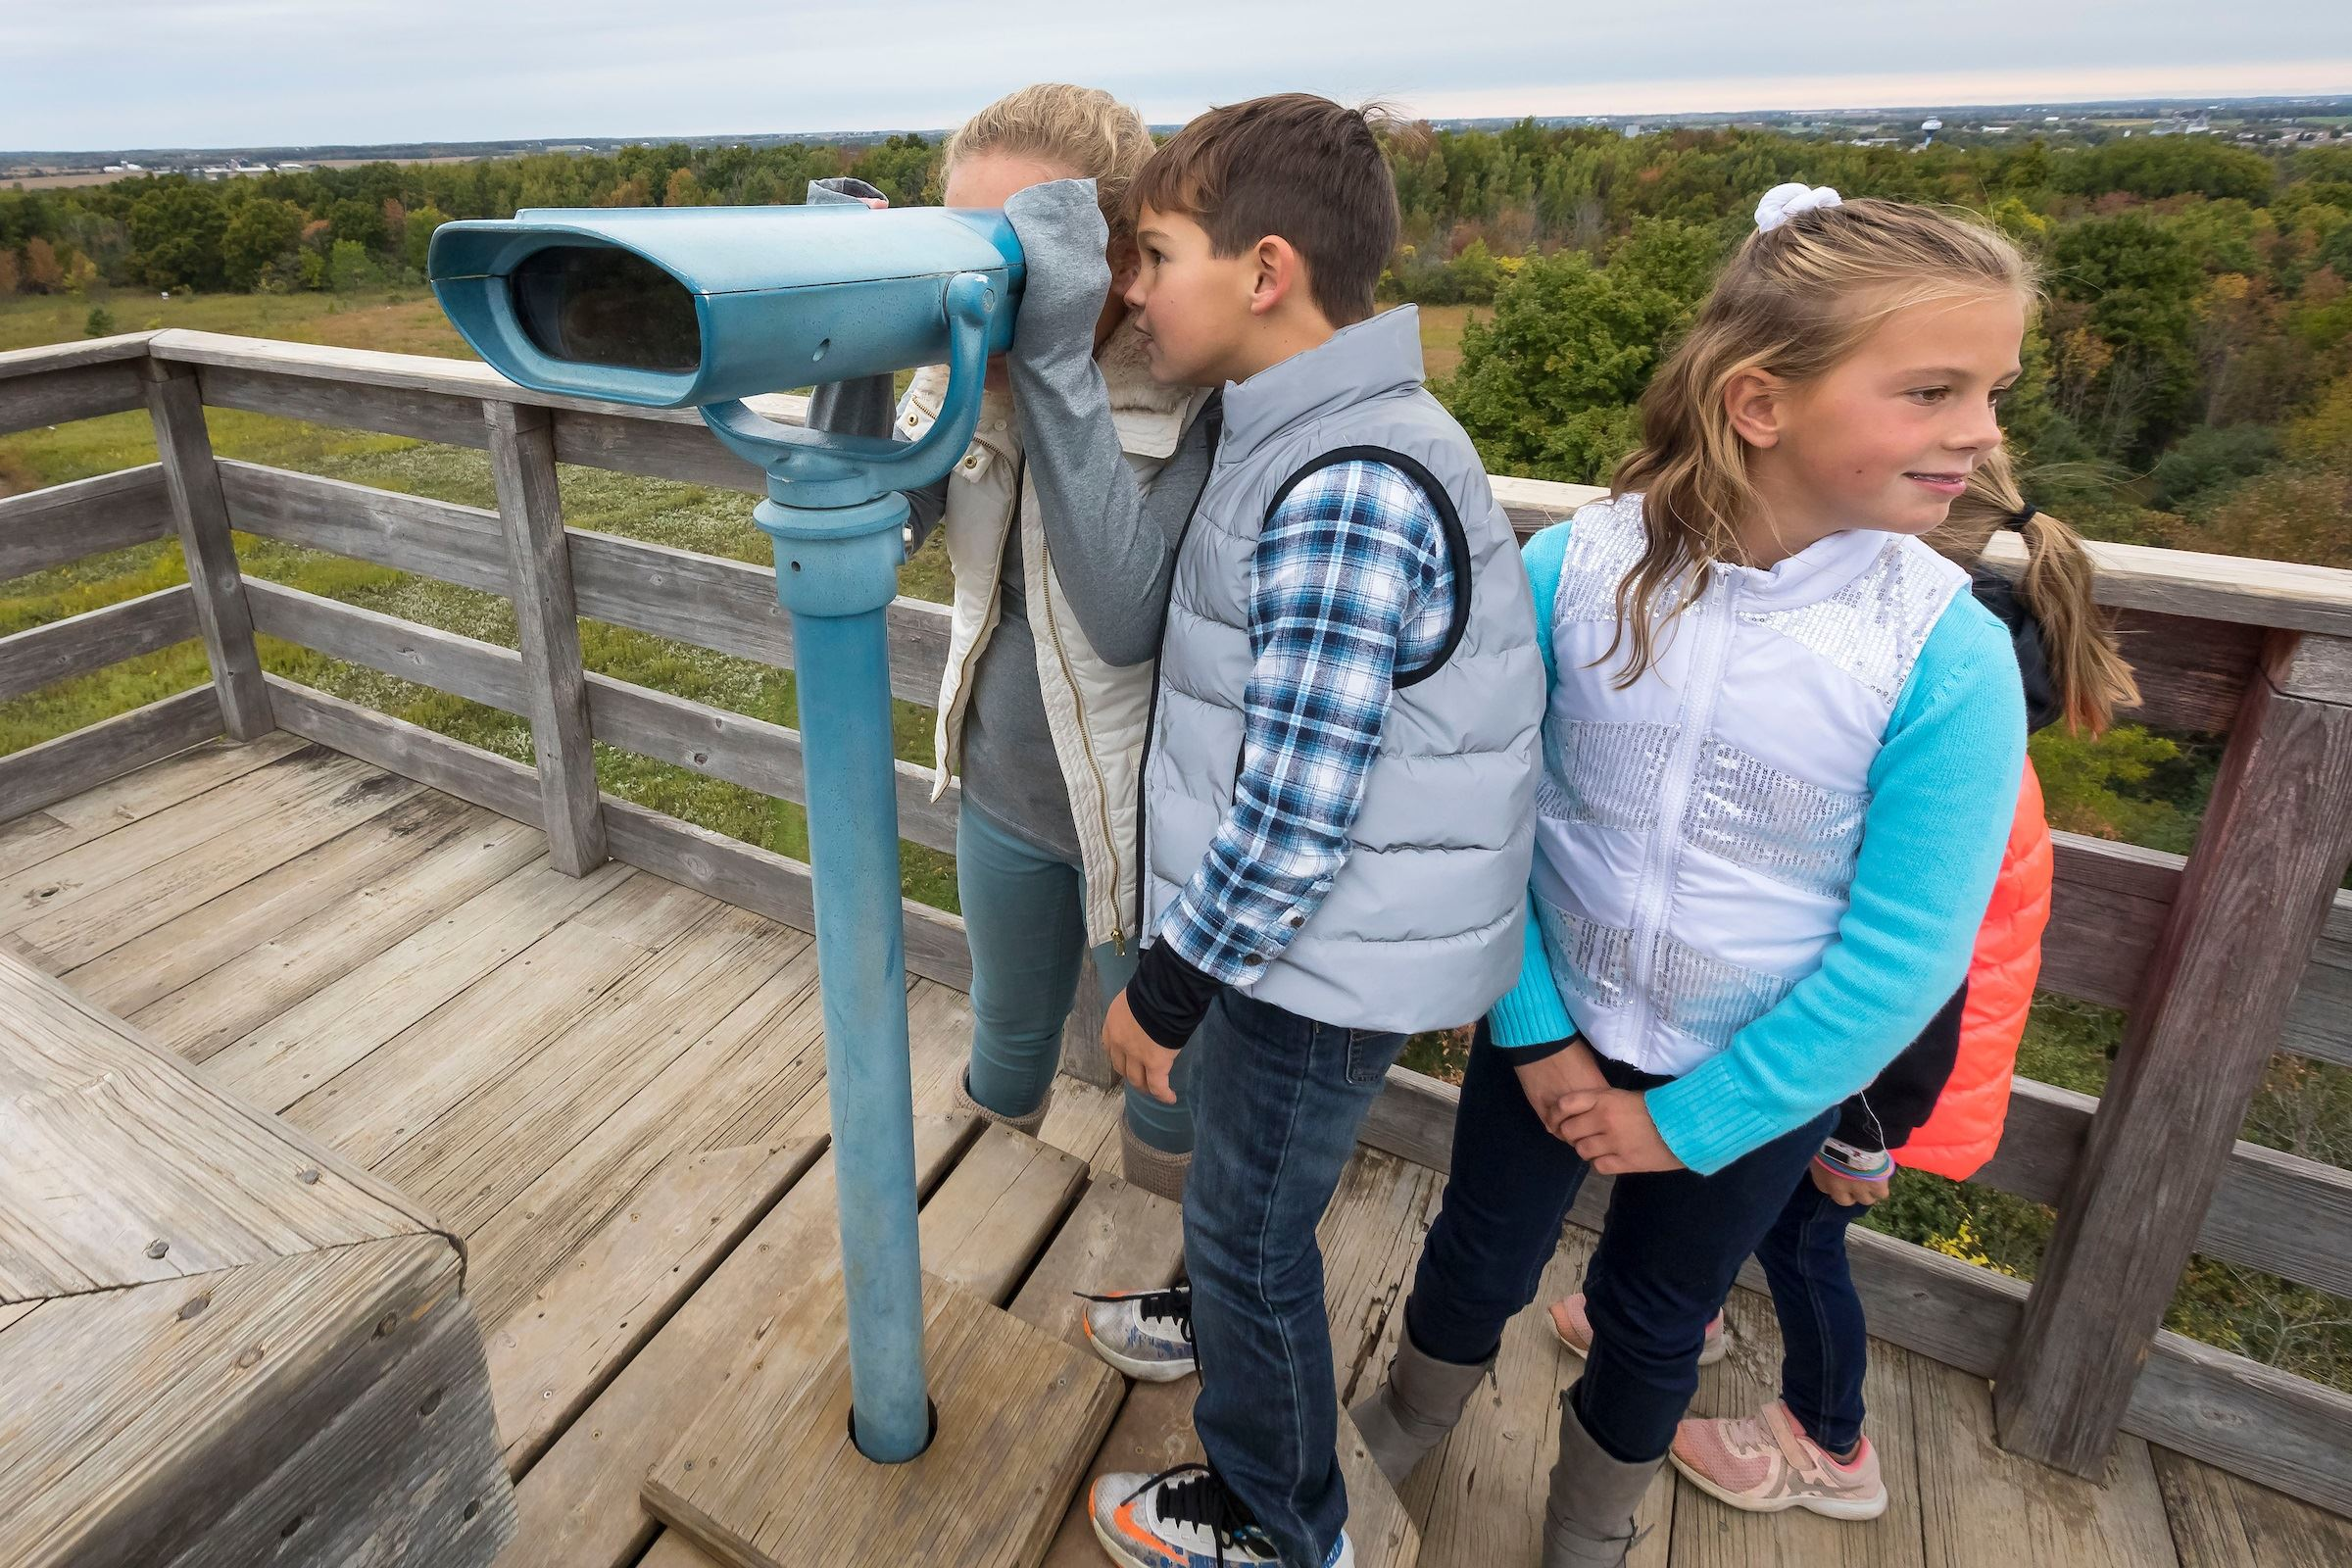 4 kids on top of a tower, 2 are looking through a viewing scope